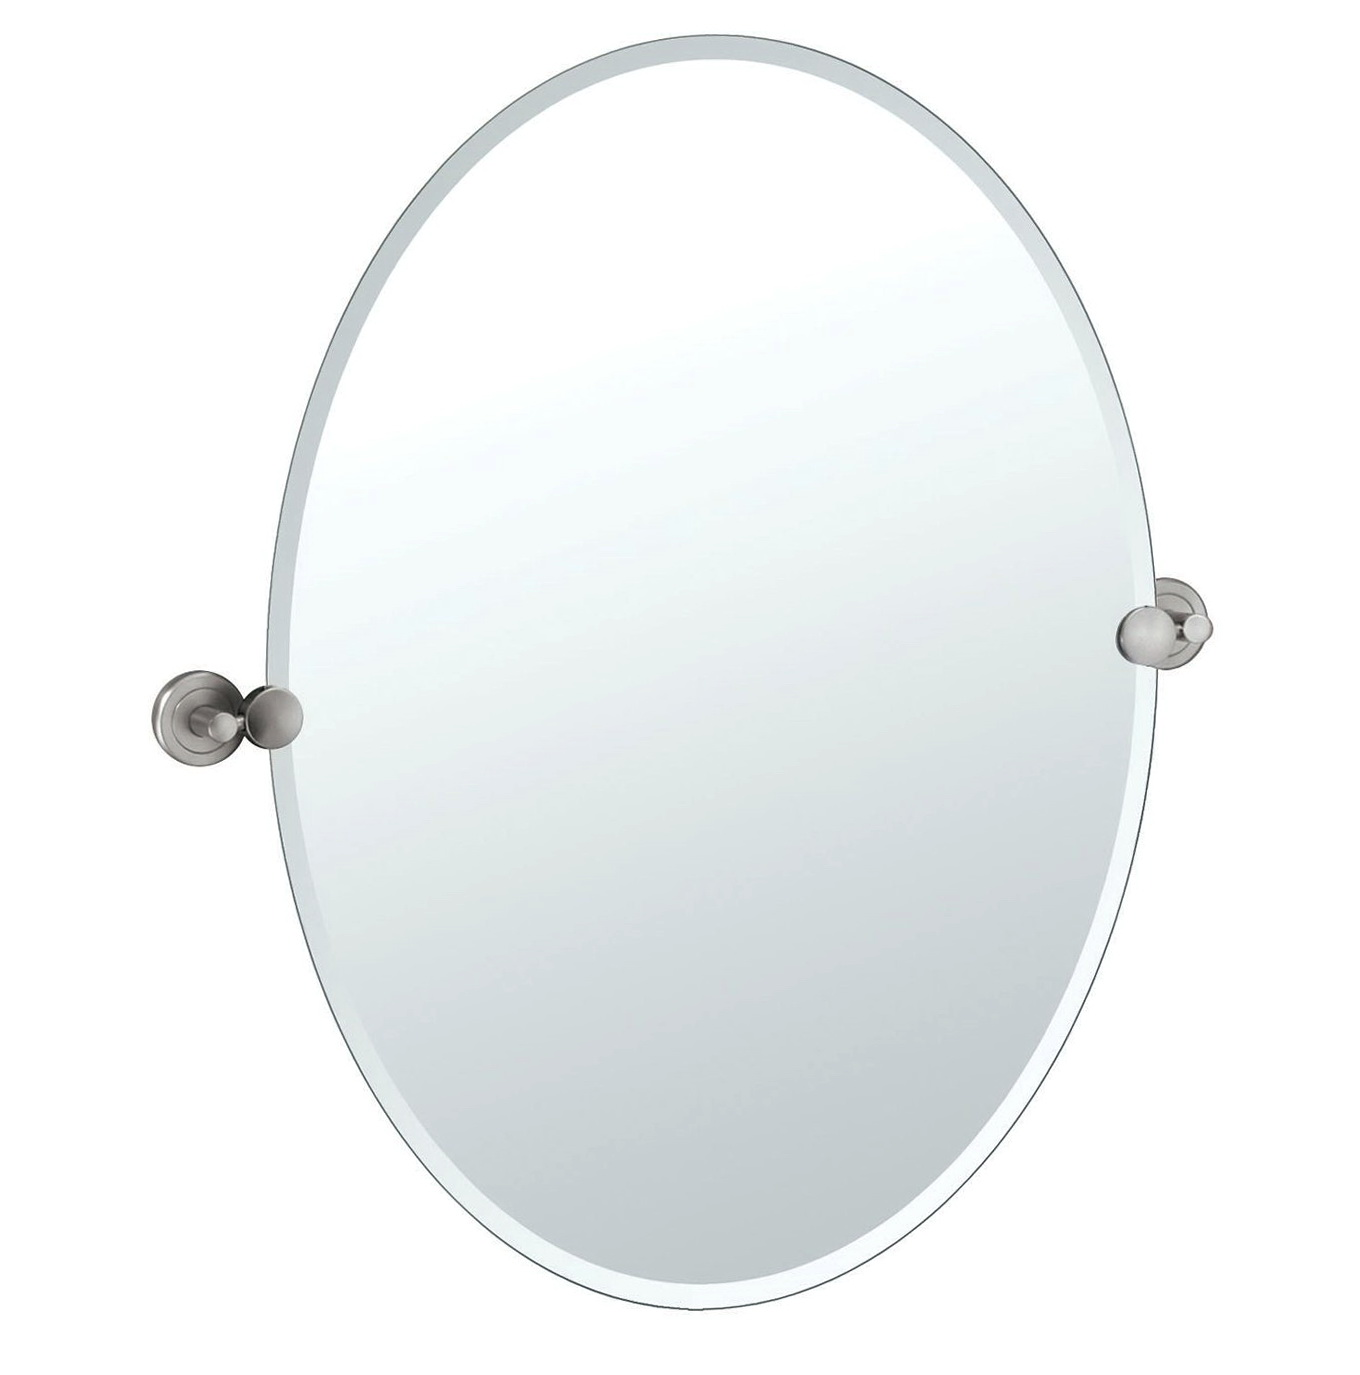 Oval Bathroom Mirrors Lowes | Home Design Ideas